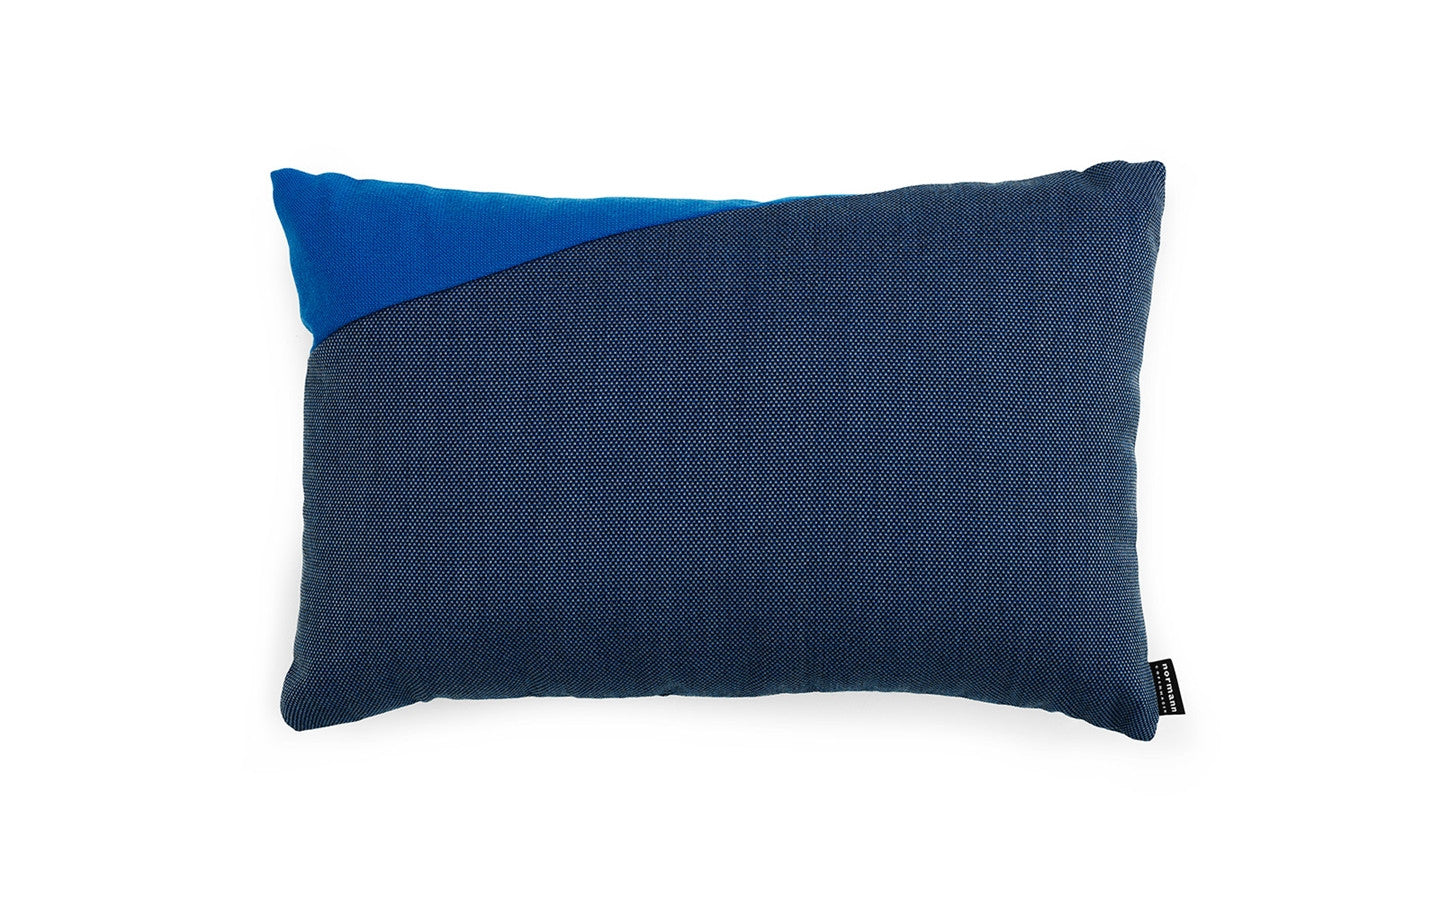 NORMANN COPENHAGEN EDGE CUSHION - Eclectic Cool  - 3